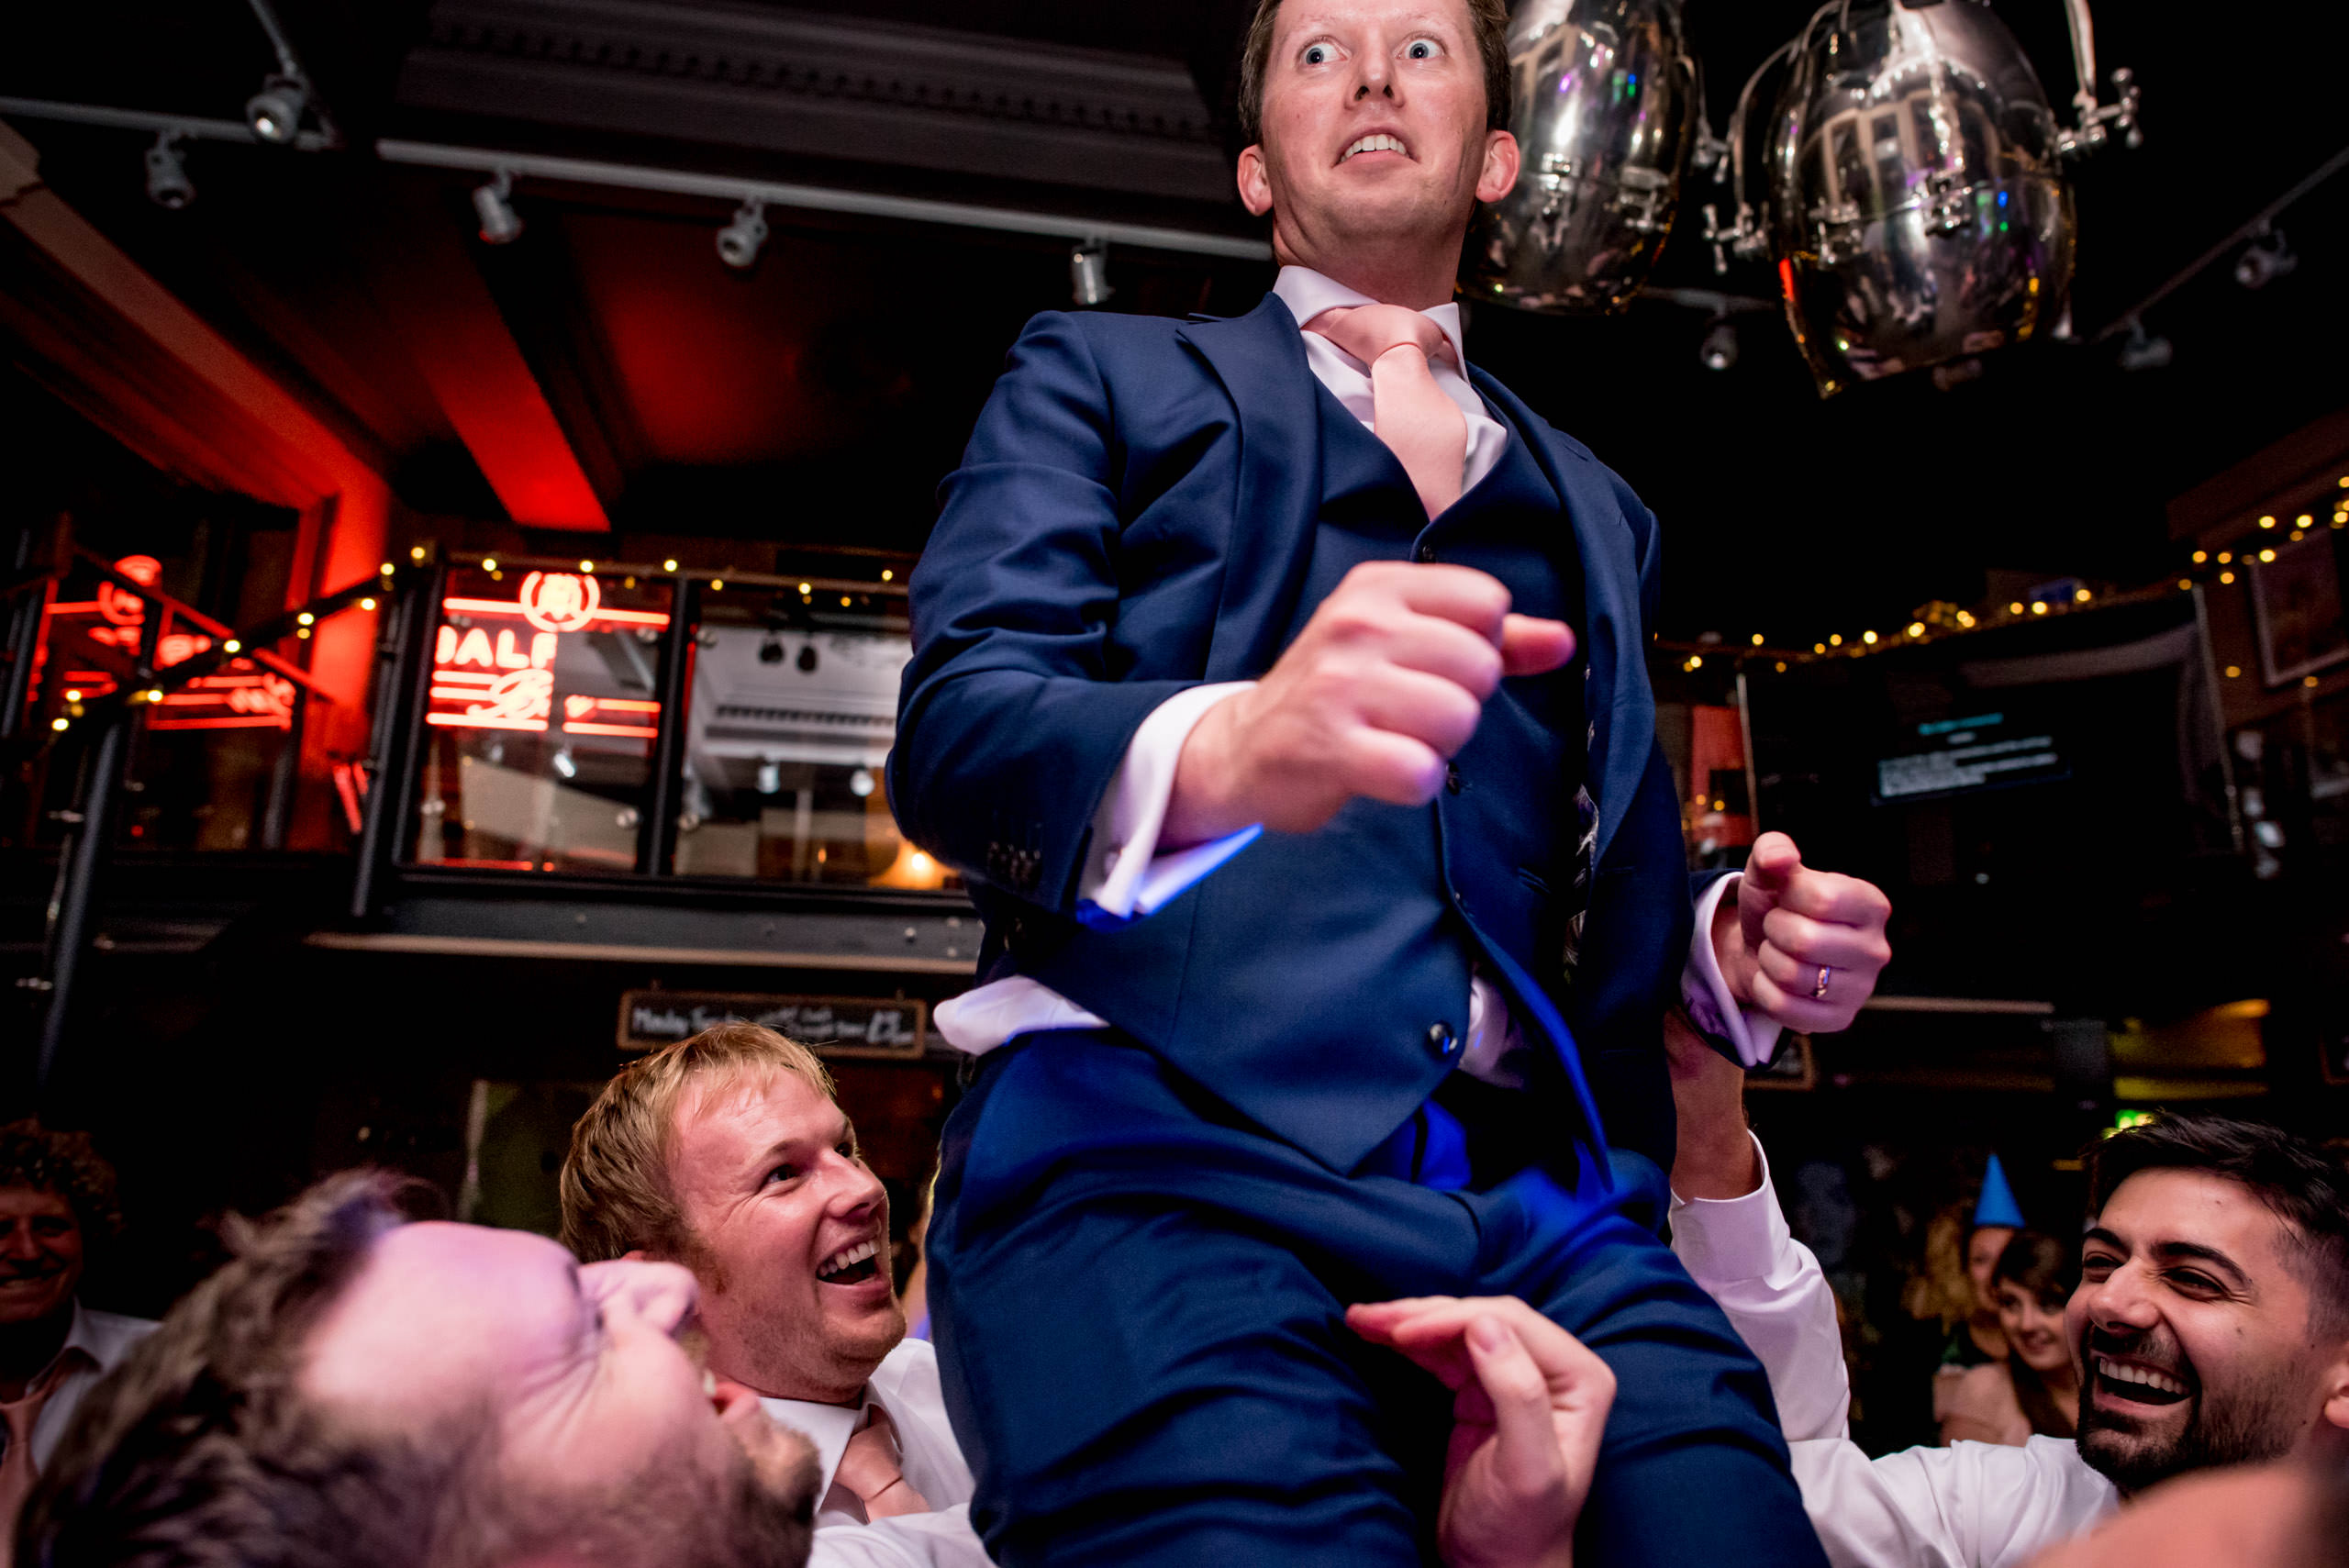 Groom being thrown in the air at a St Bart's Brewery wedding in Smithfields, London